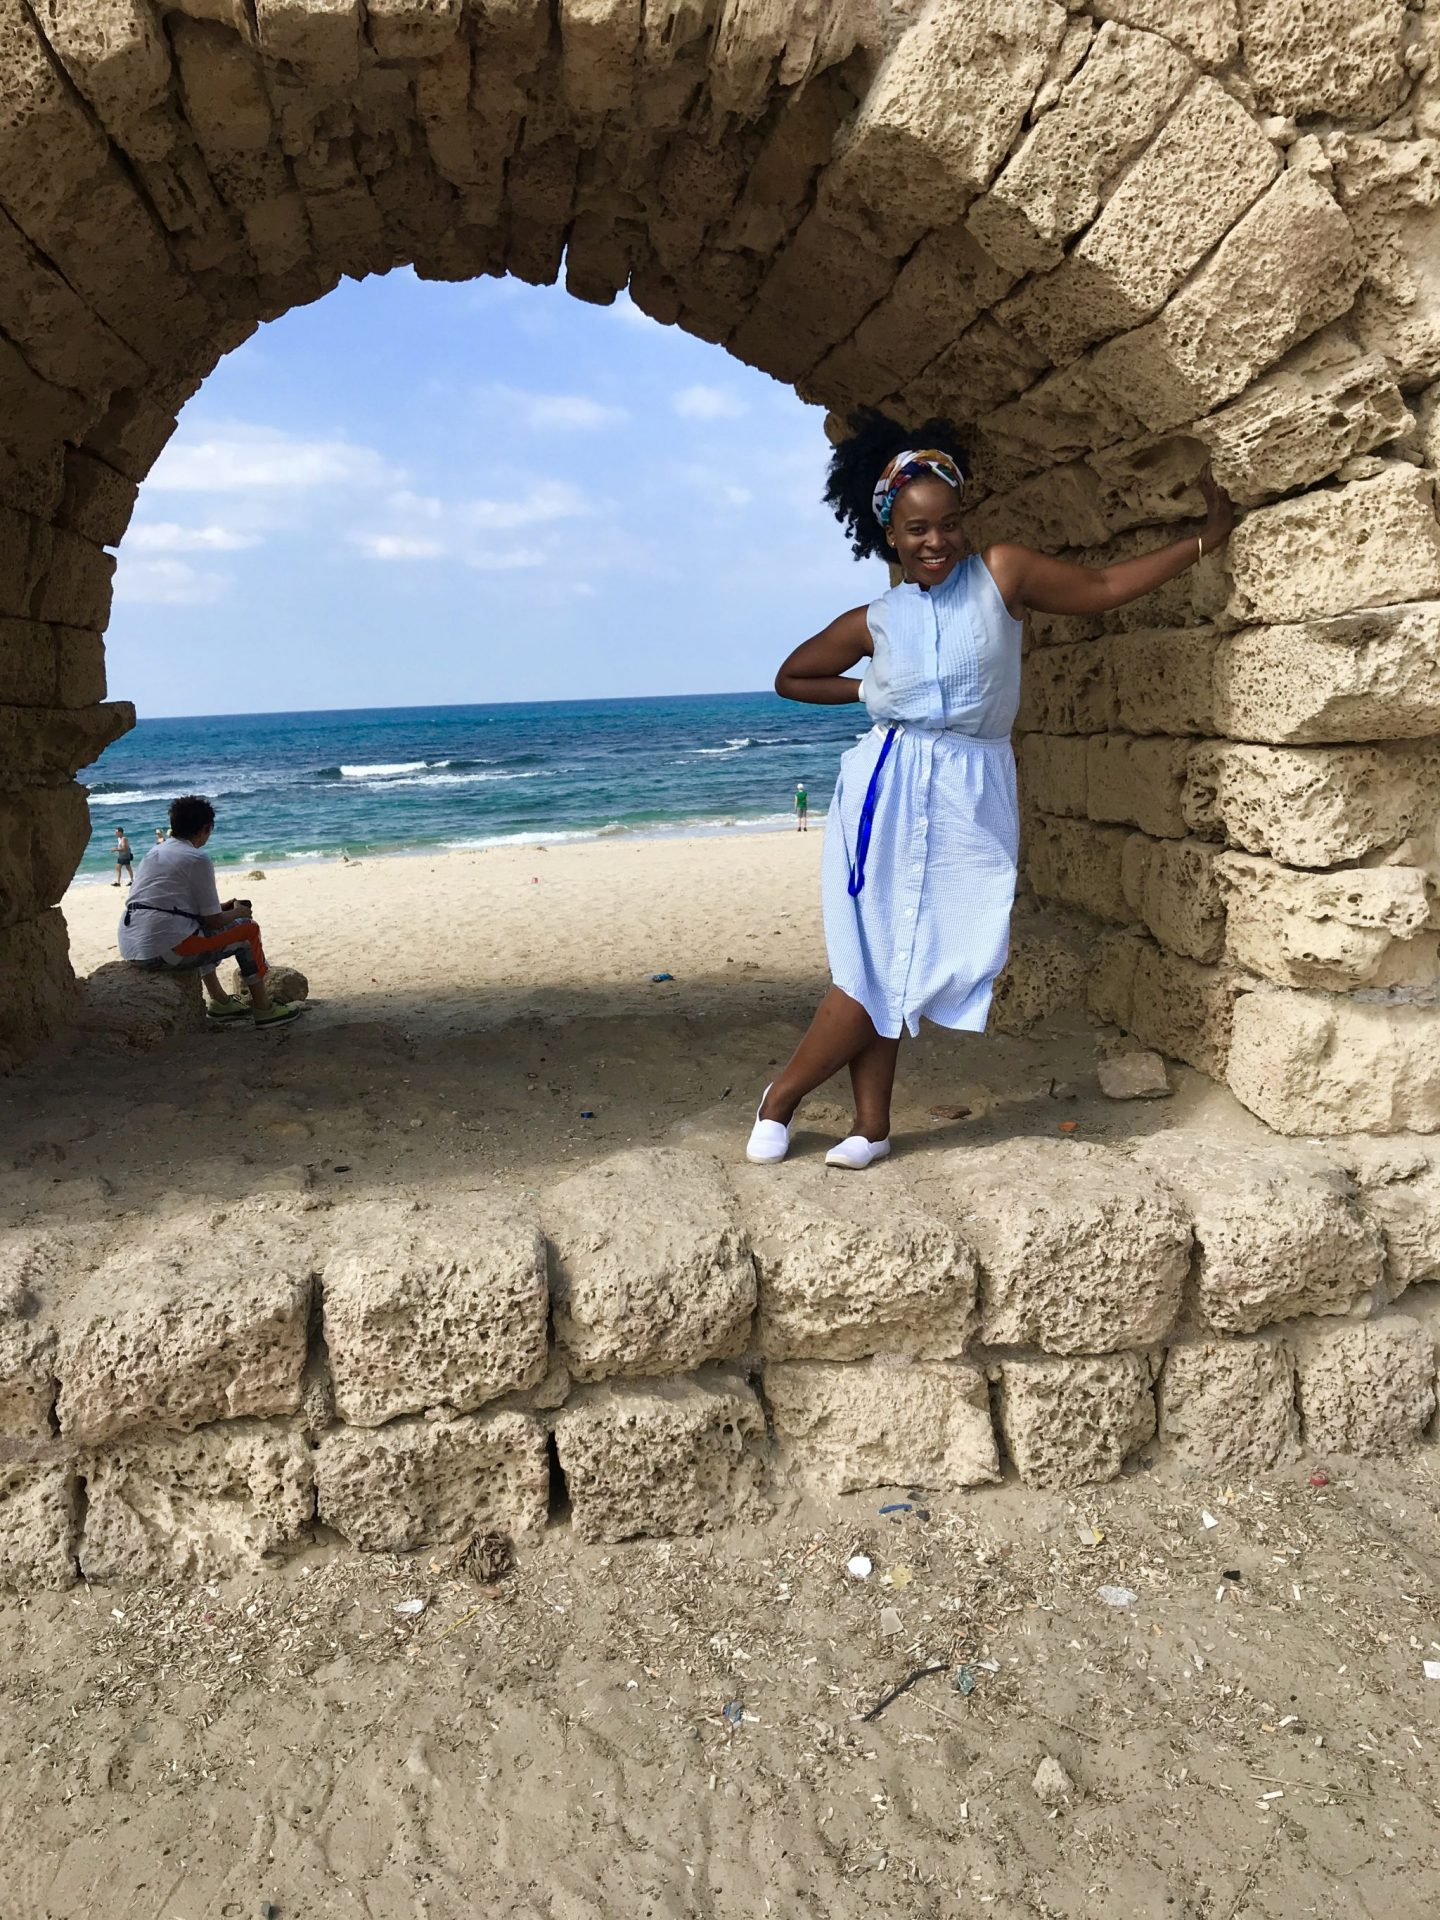 My Trip to the Holy Land (Israel) | Adebisi Adebowale